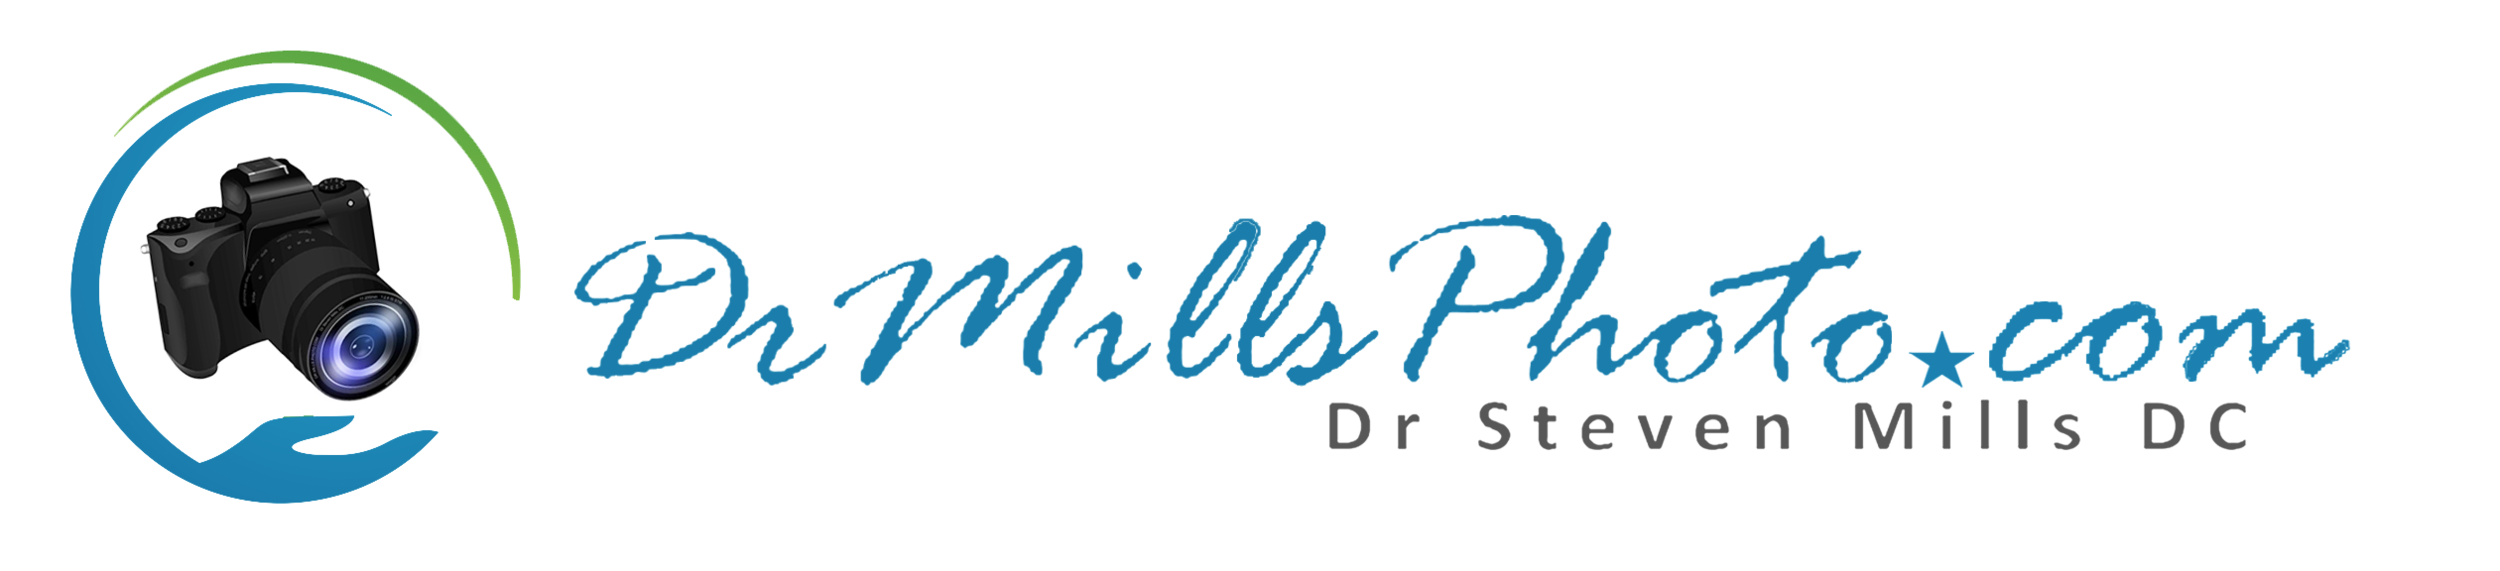 AAAAA - DrMillsPHOTOCom - LOGO - WITH Text - White - rev 6-4-19.png